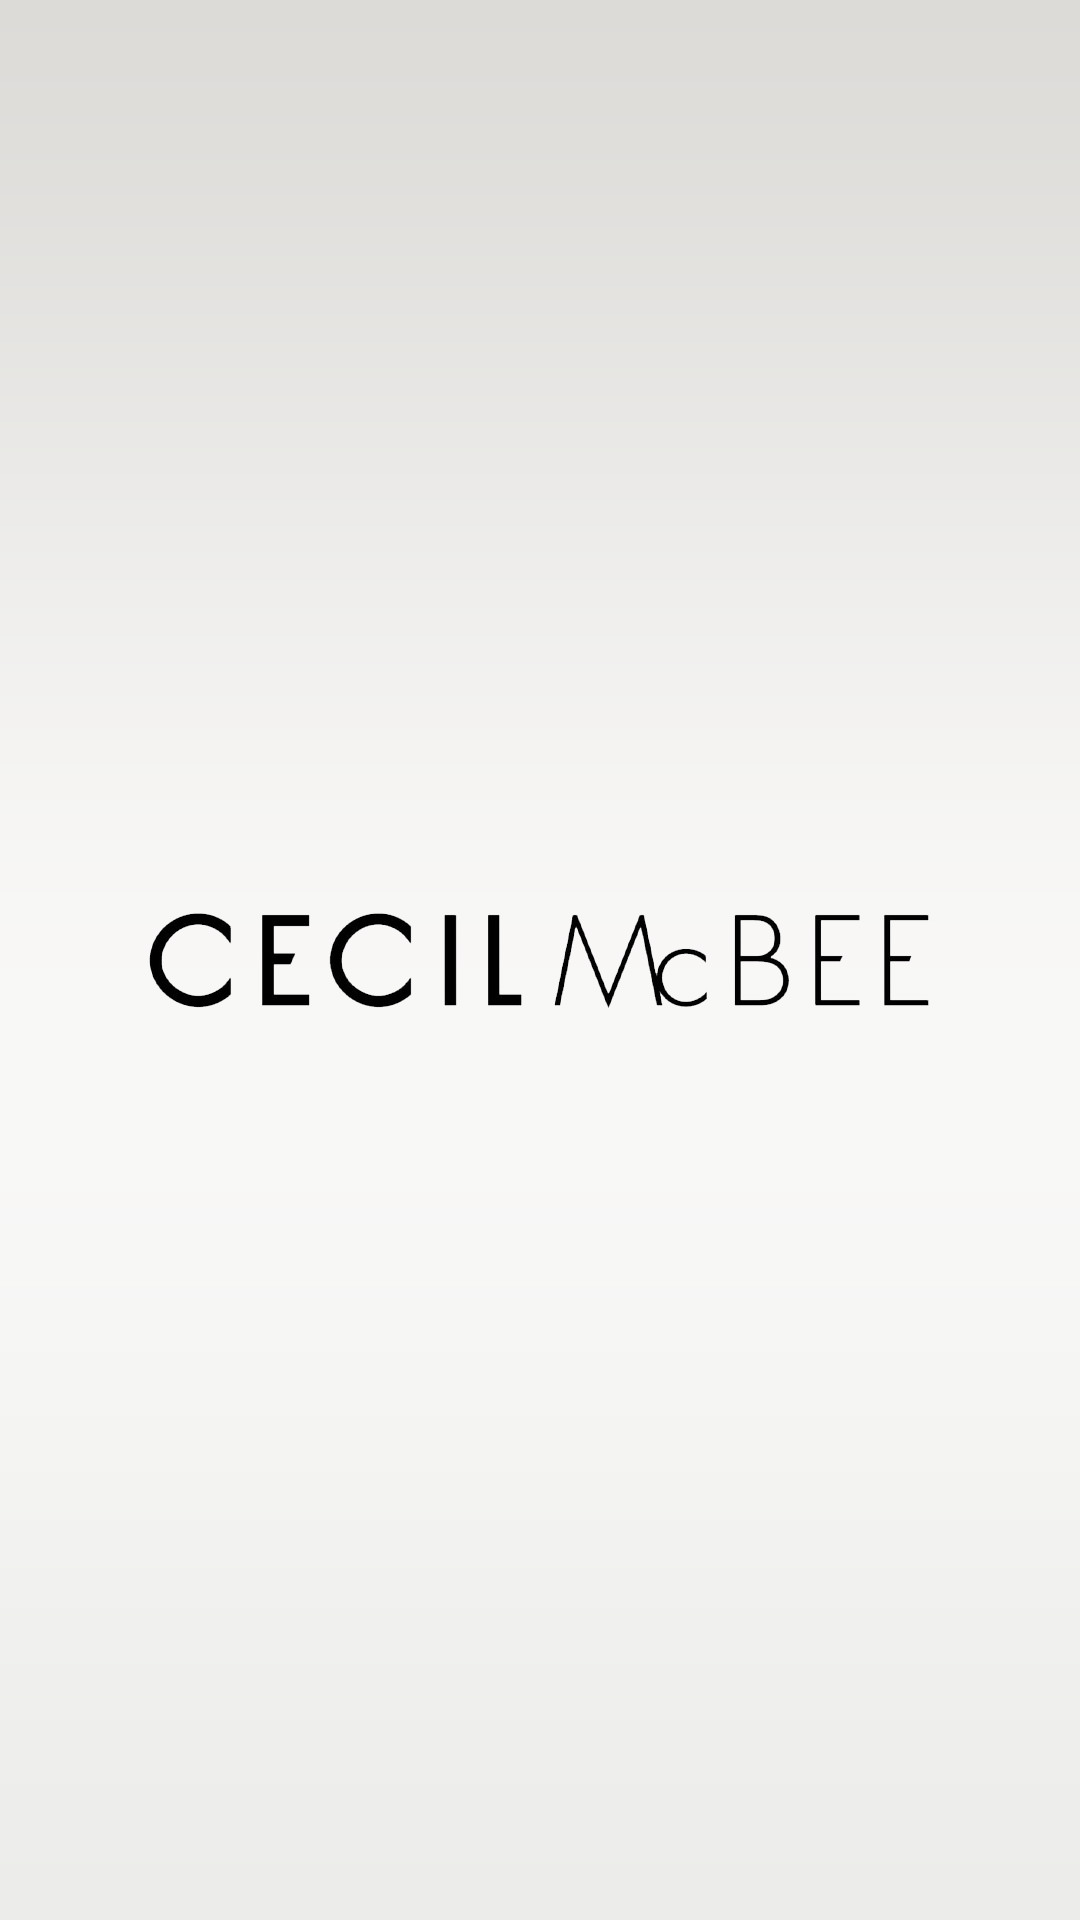 cecil00014 - セシルマクビー[CECIL McBEE]の高画質スマホ壁紙23枚 [iPhone&Androidに対応]